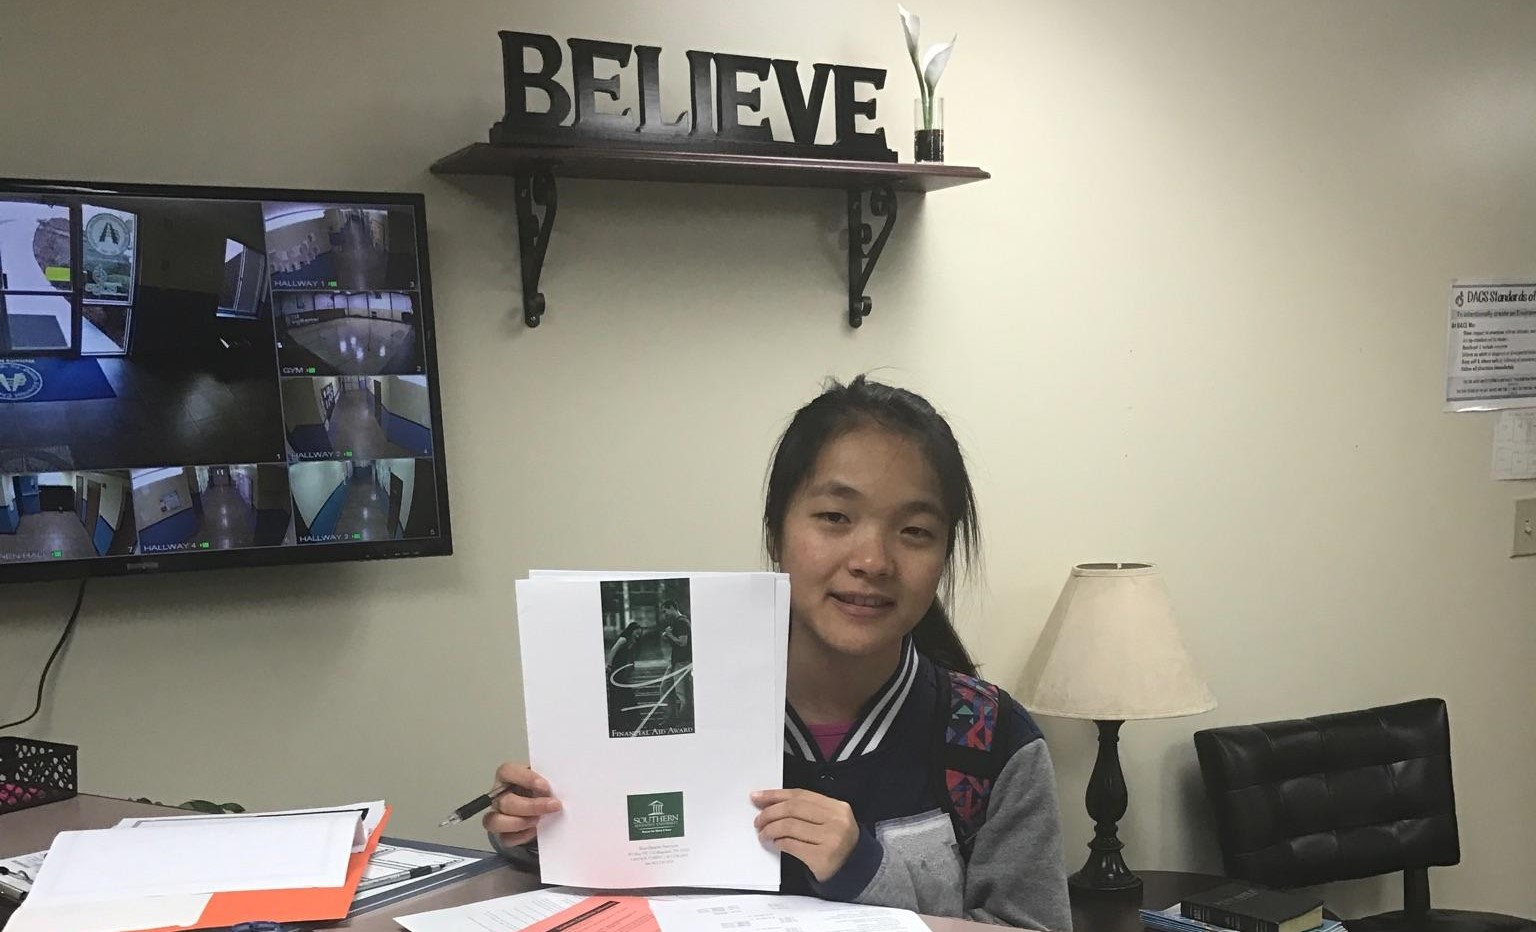 February 17, 2017 - Over the past six years Niang Muang has been a F.R.E.E. sponsored refugee student at DACS/AAA. Niang proudly holds paperwork confirming that she has been awarded a scholarship to attend Southern Adventist University (SAU) as she continues towards her goal of becoming a dentist. Nia richly deserves the scholarship award as she has worked long and hard to achieve scholastic excellence as she maintained a 4.0 GPA throughout high school at AAA). Having graduated from AAA in May 2017, Niang is now in her second year at SAU. We expect great things from her upon her graduation from SAU. (See next photo below.)